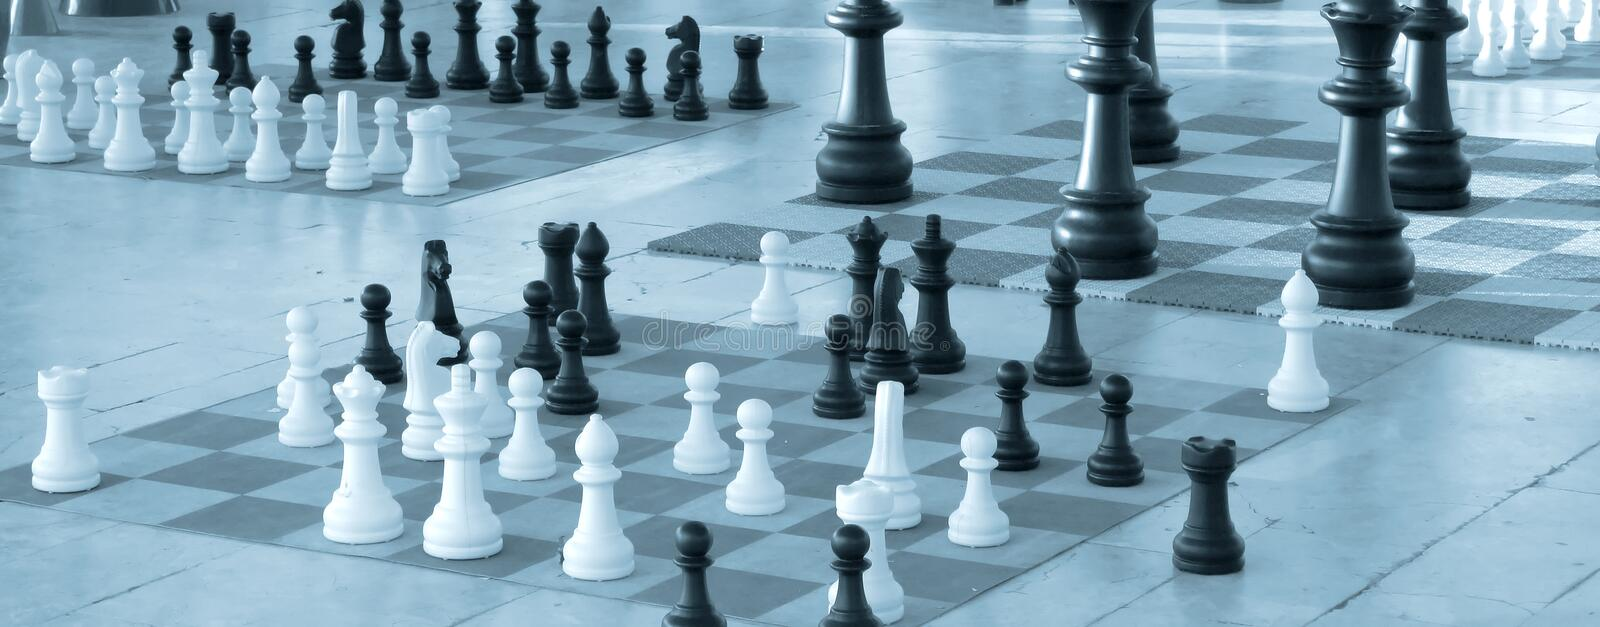 Chess pieces in diferent sizes - Blue tint. Chess pieces in diferent size on a chess boards - Blue tint stock photo